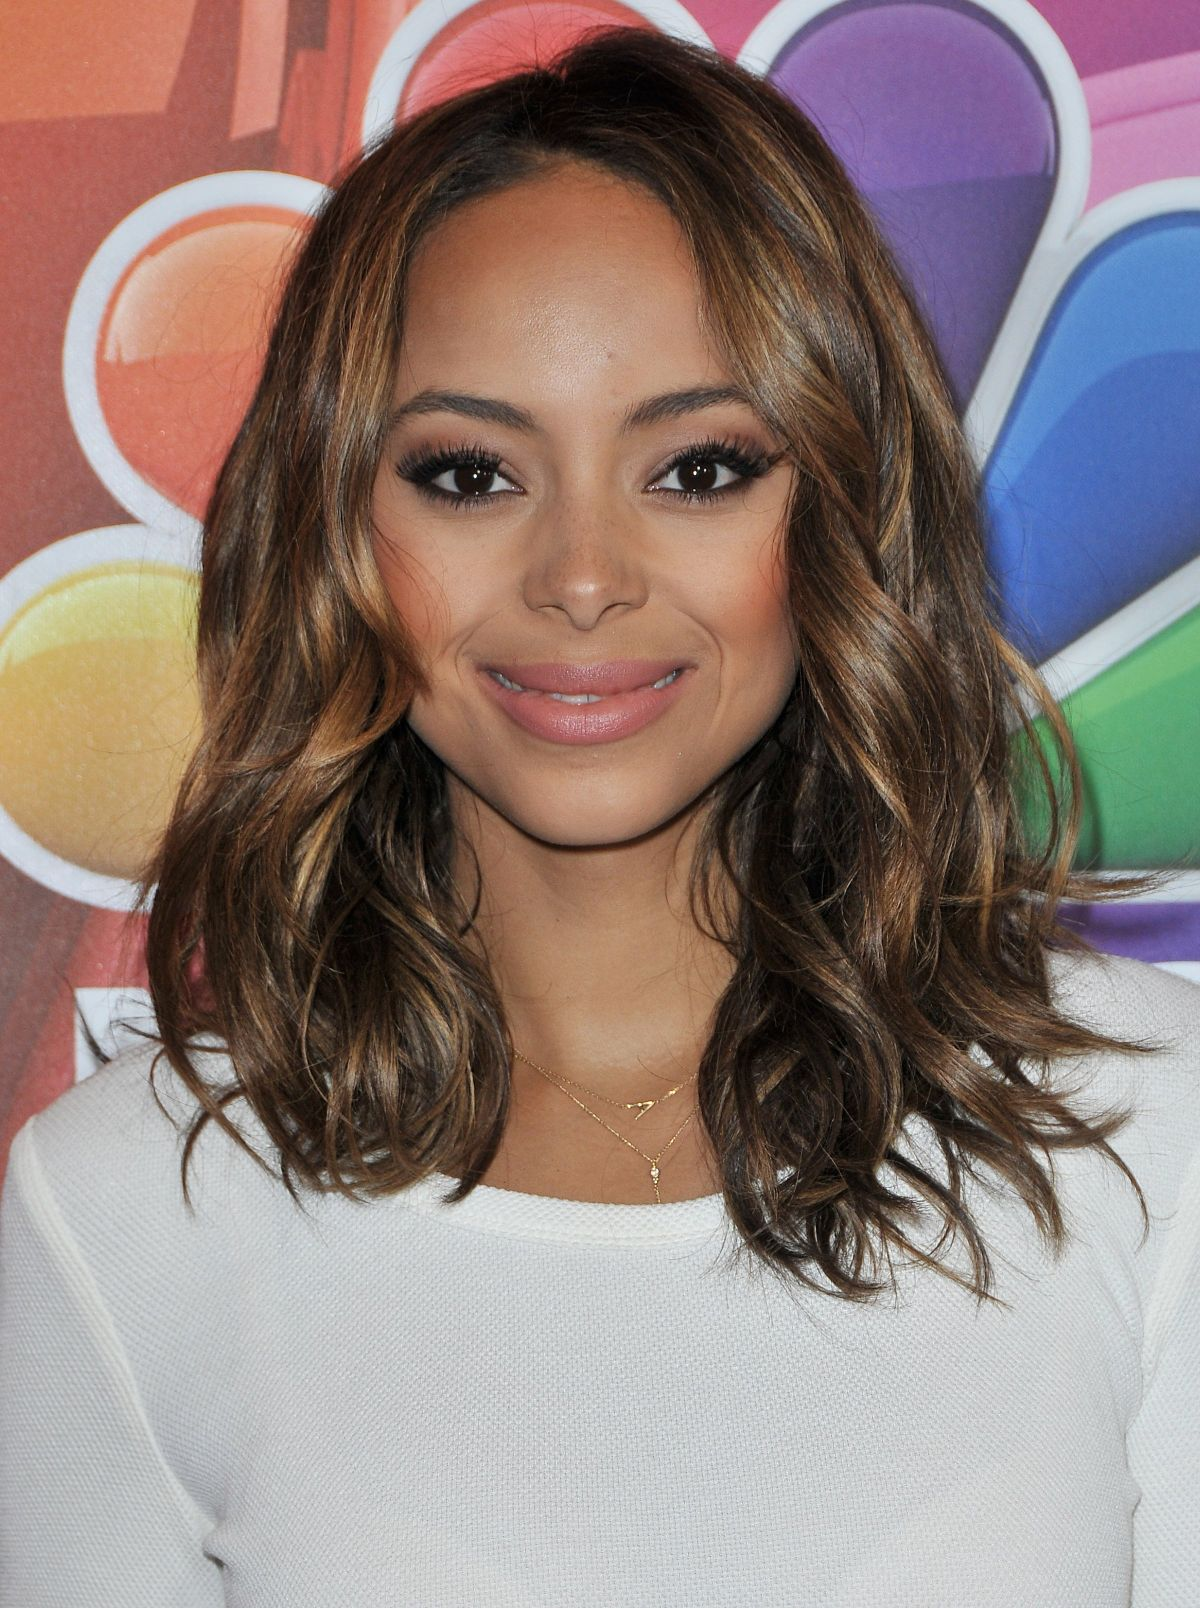 amber-stevens-at-nbc-universal-2016-winter-tca-tour-in-pasadena-01-13-2016_3.jpg